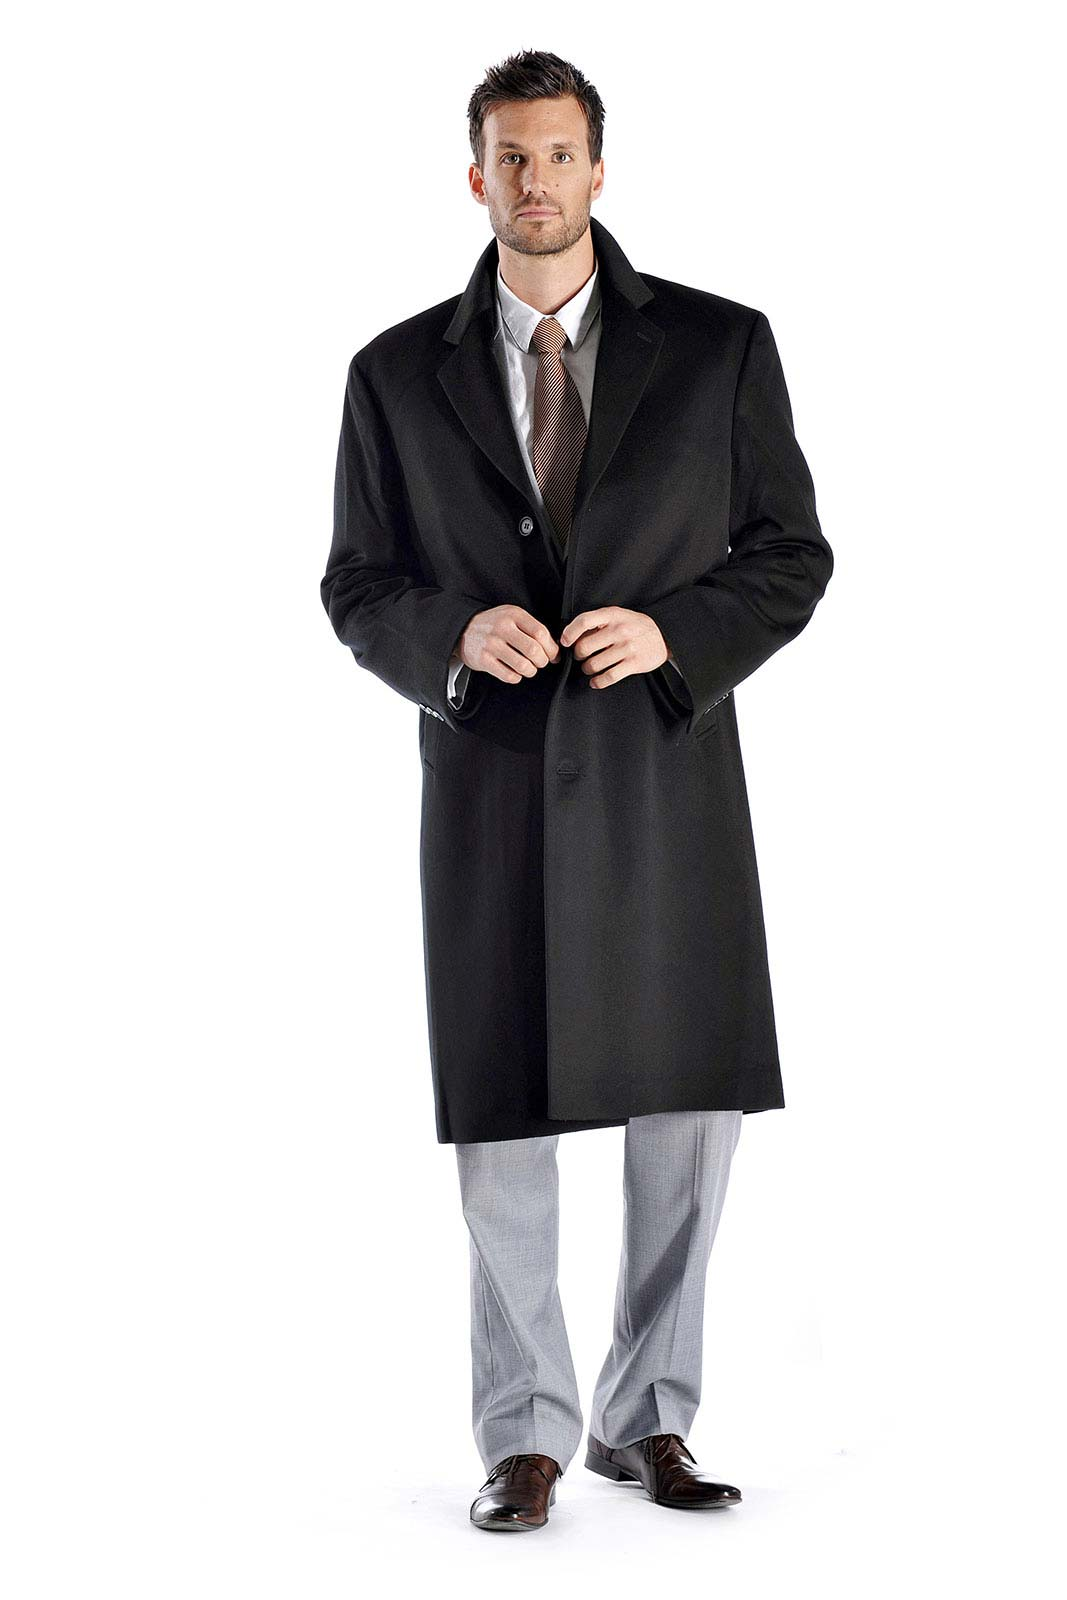 Luxurious soft and really warm this overcoat is made from the finest grades of cashmere and fine wool and offers unsurpassed warmth and softness. This is a knee length coat and has the following features- Made from 30 Cashmere and 70 Fine Wool Light weight yet incredibly warm Fabric weight - 450 gms/square meter 3 button Centre vent 100 Polyester Satin Lining Available in standard US sizes 40 to 50 Measurements of this Coat Size404244464850Length44.54545.54646.547Shoulder20.52121.52222.523Sleeve26.52727.52828.529Corresponding Suit Size404244464850